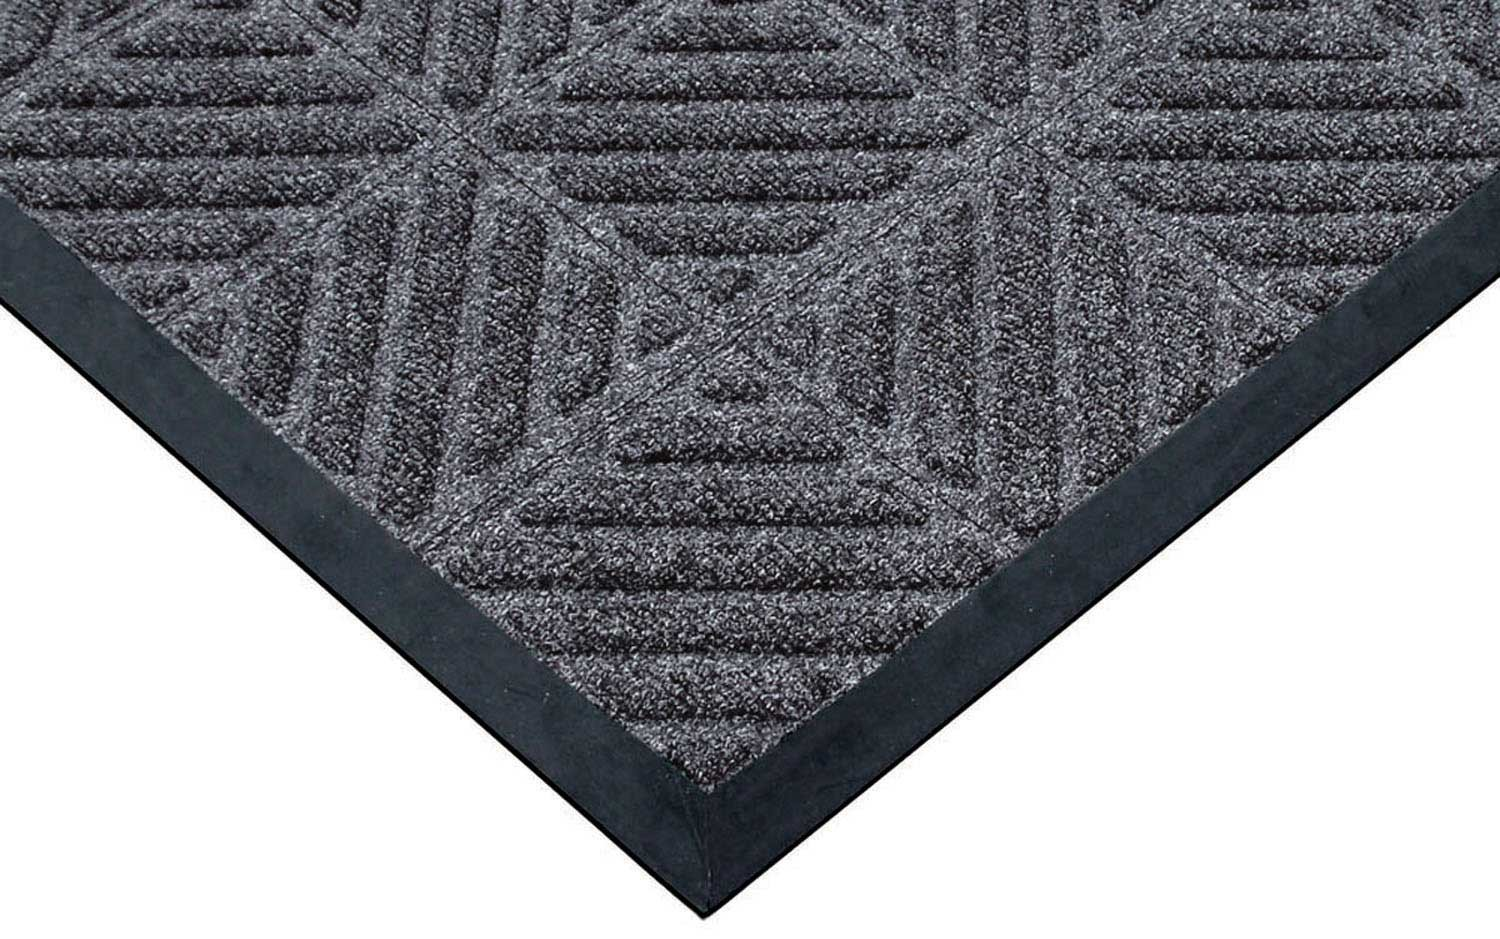 rubber mats best mat for decoration floor new outdoor homes